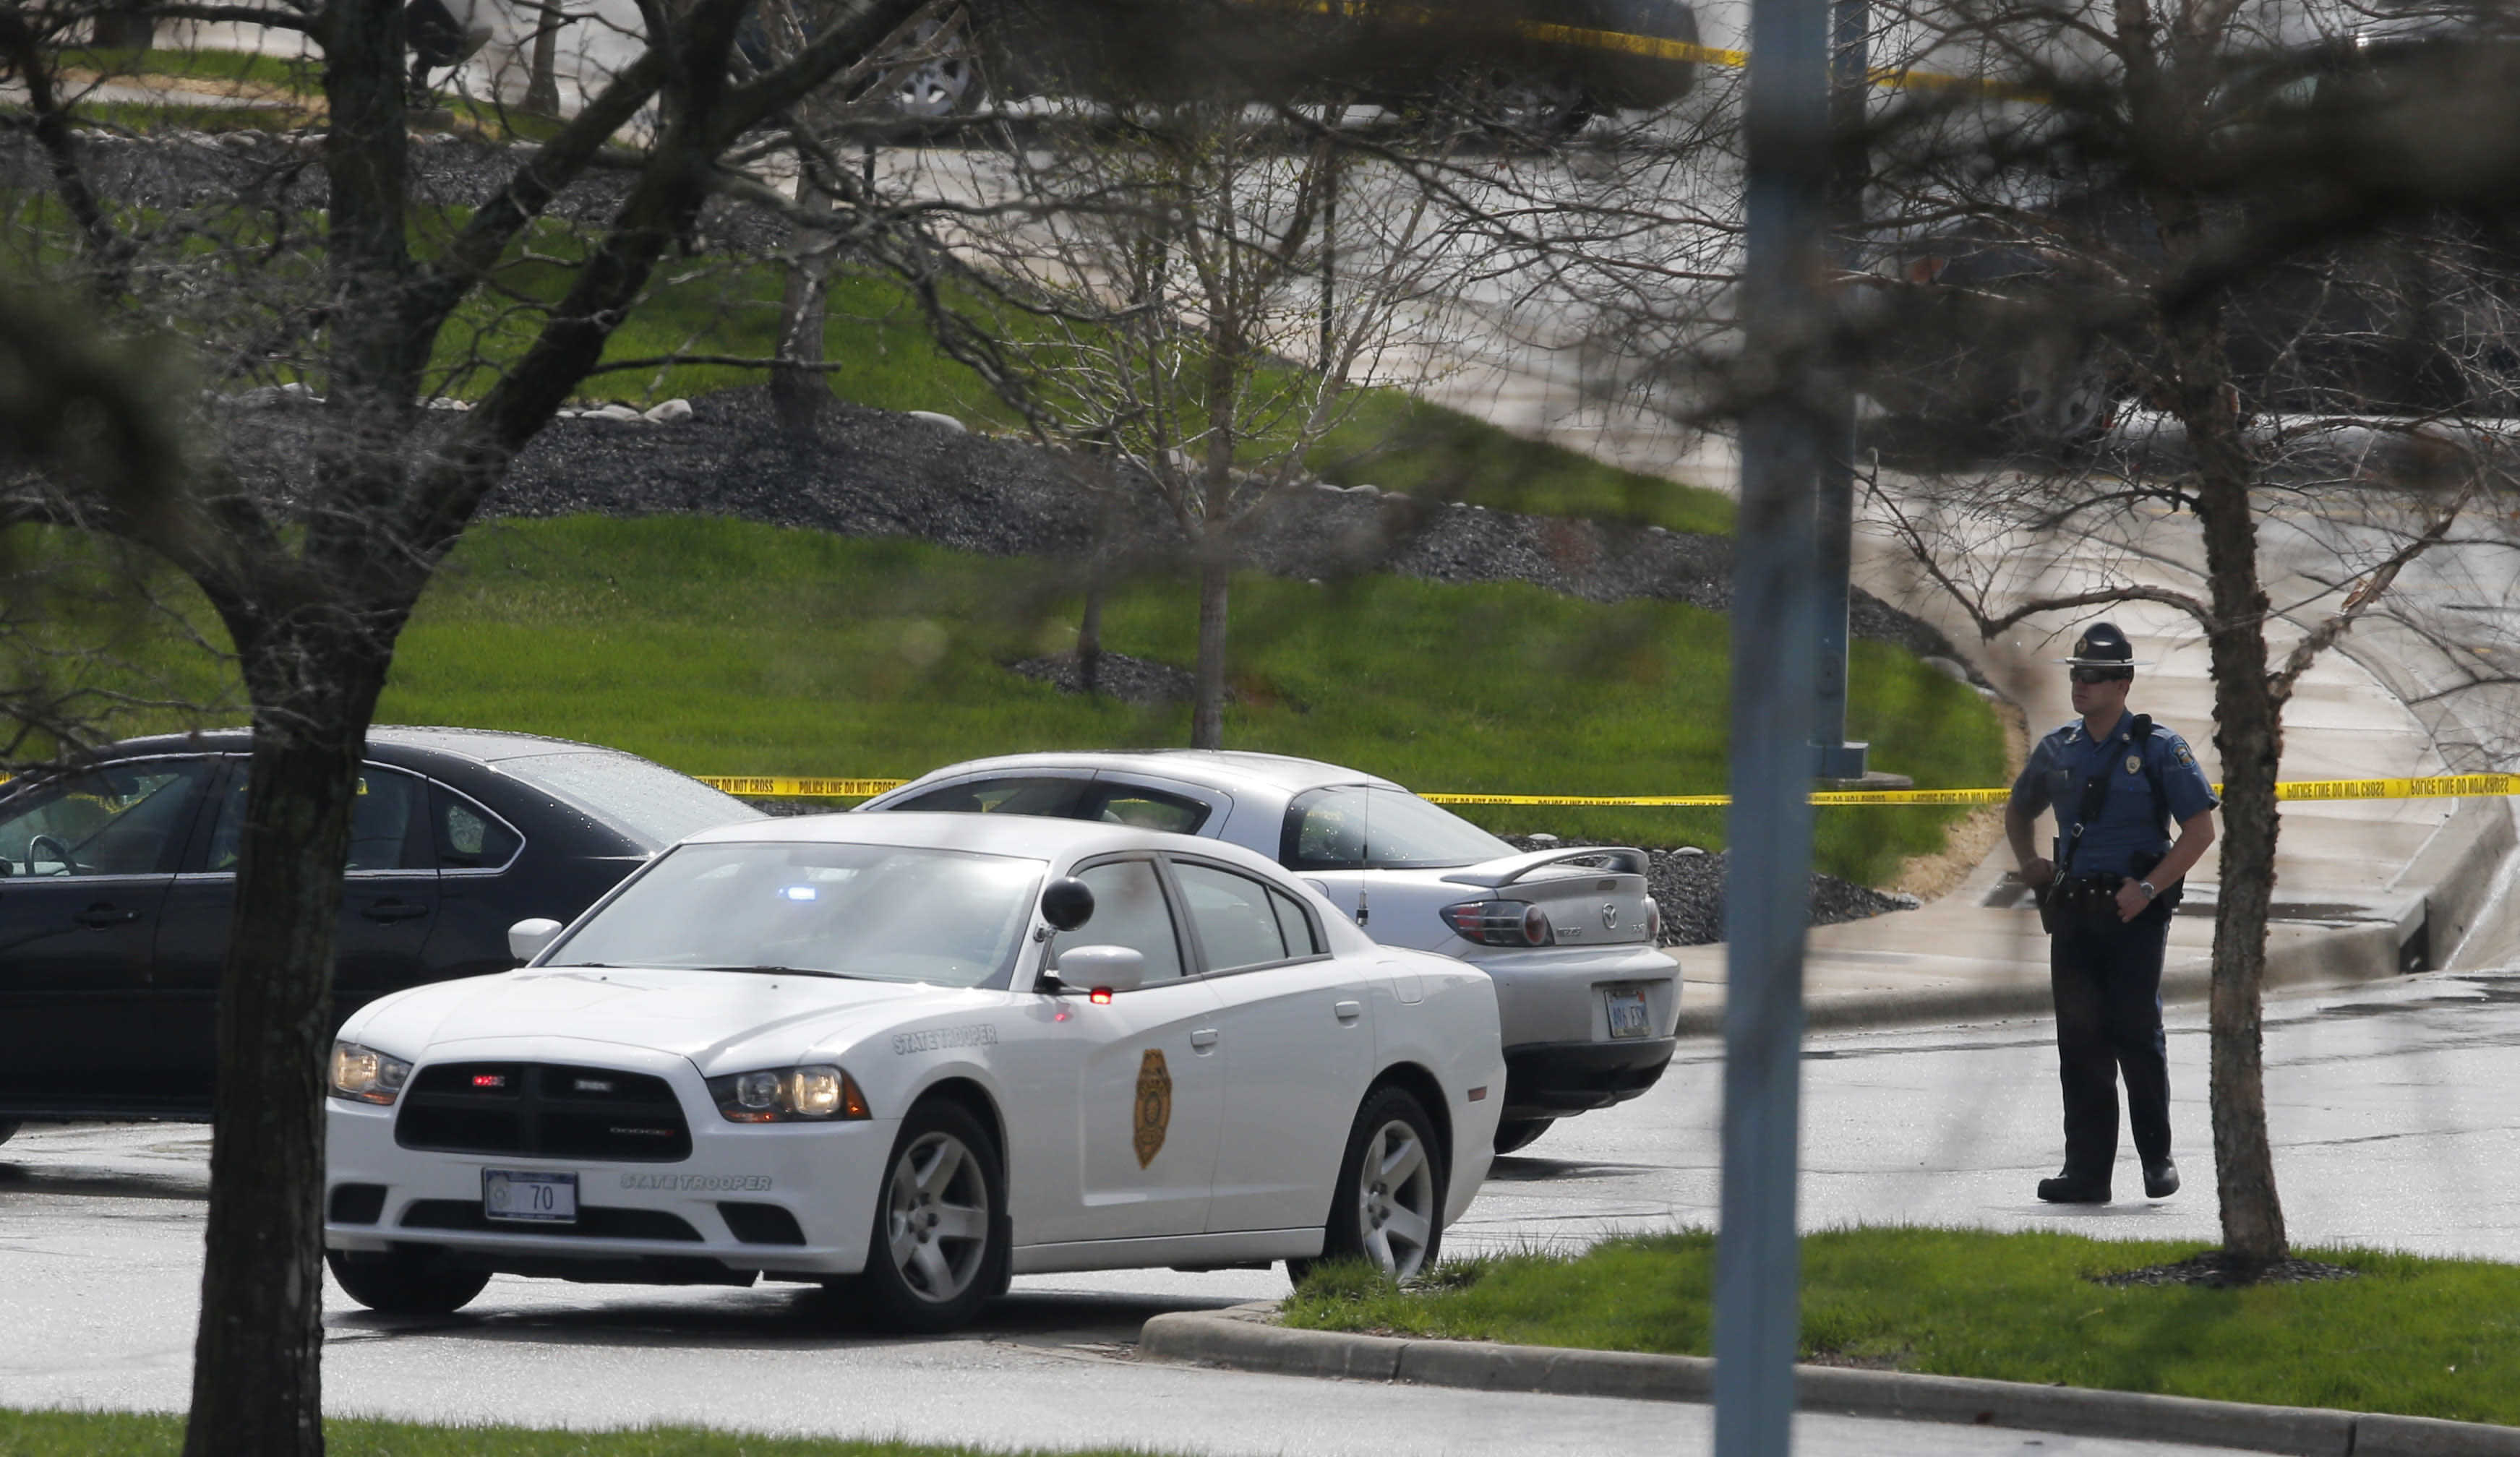 A Kansas State Trooper stands near the location of a shooting at the Jewish Community Center in Overland Park, Kan., Sunday, April 13, 2014. (AP Photo/Orlin Wagner)